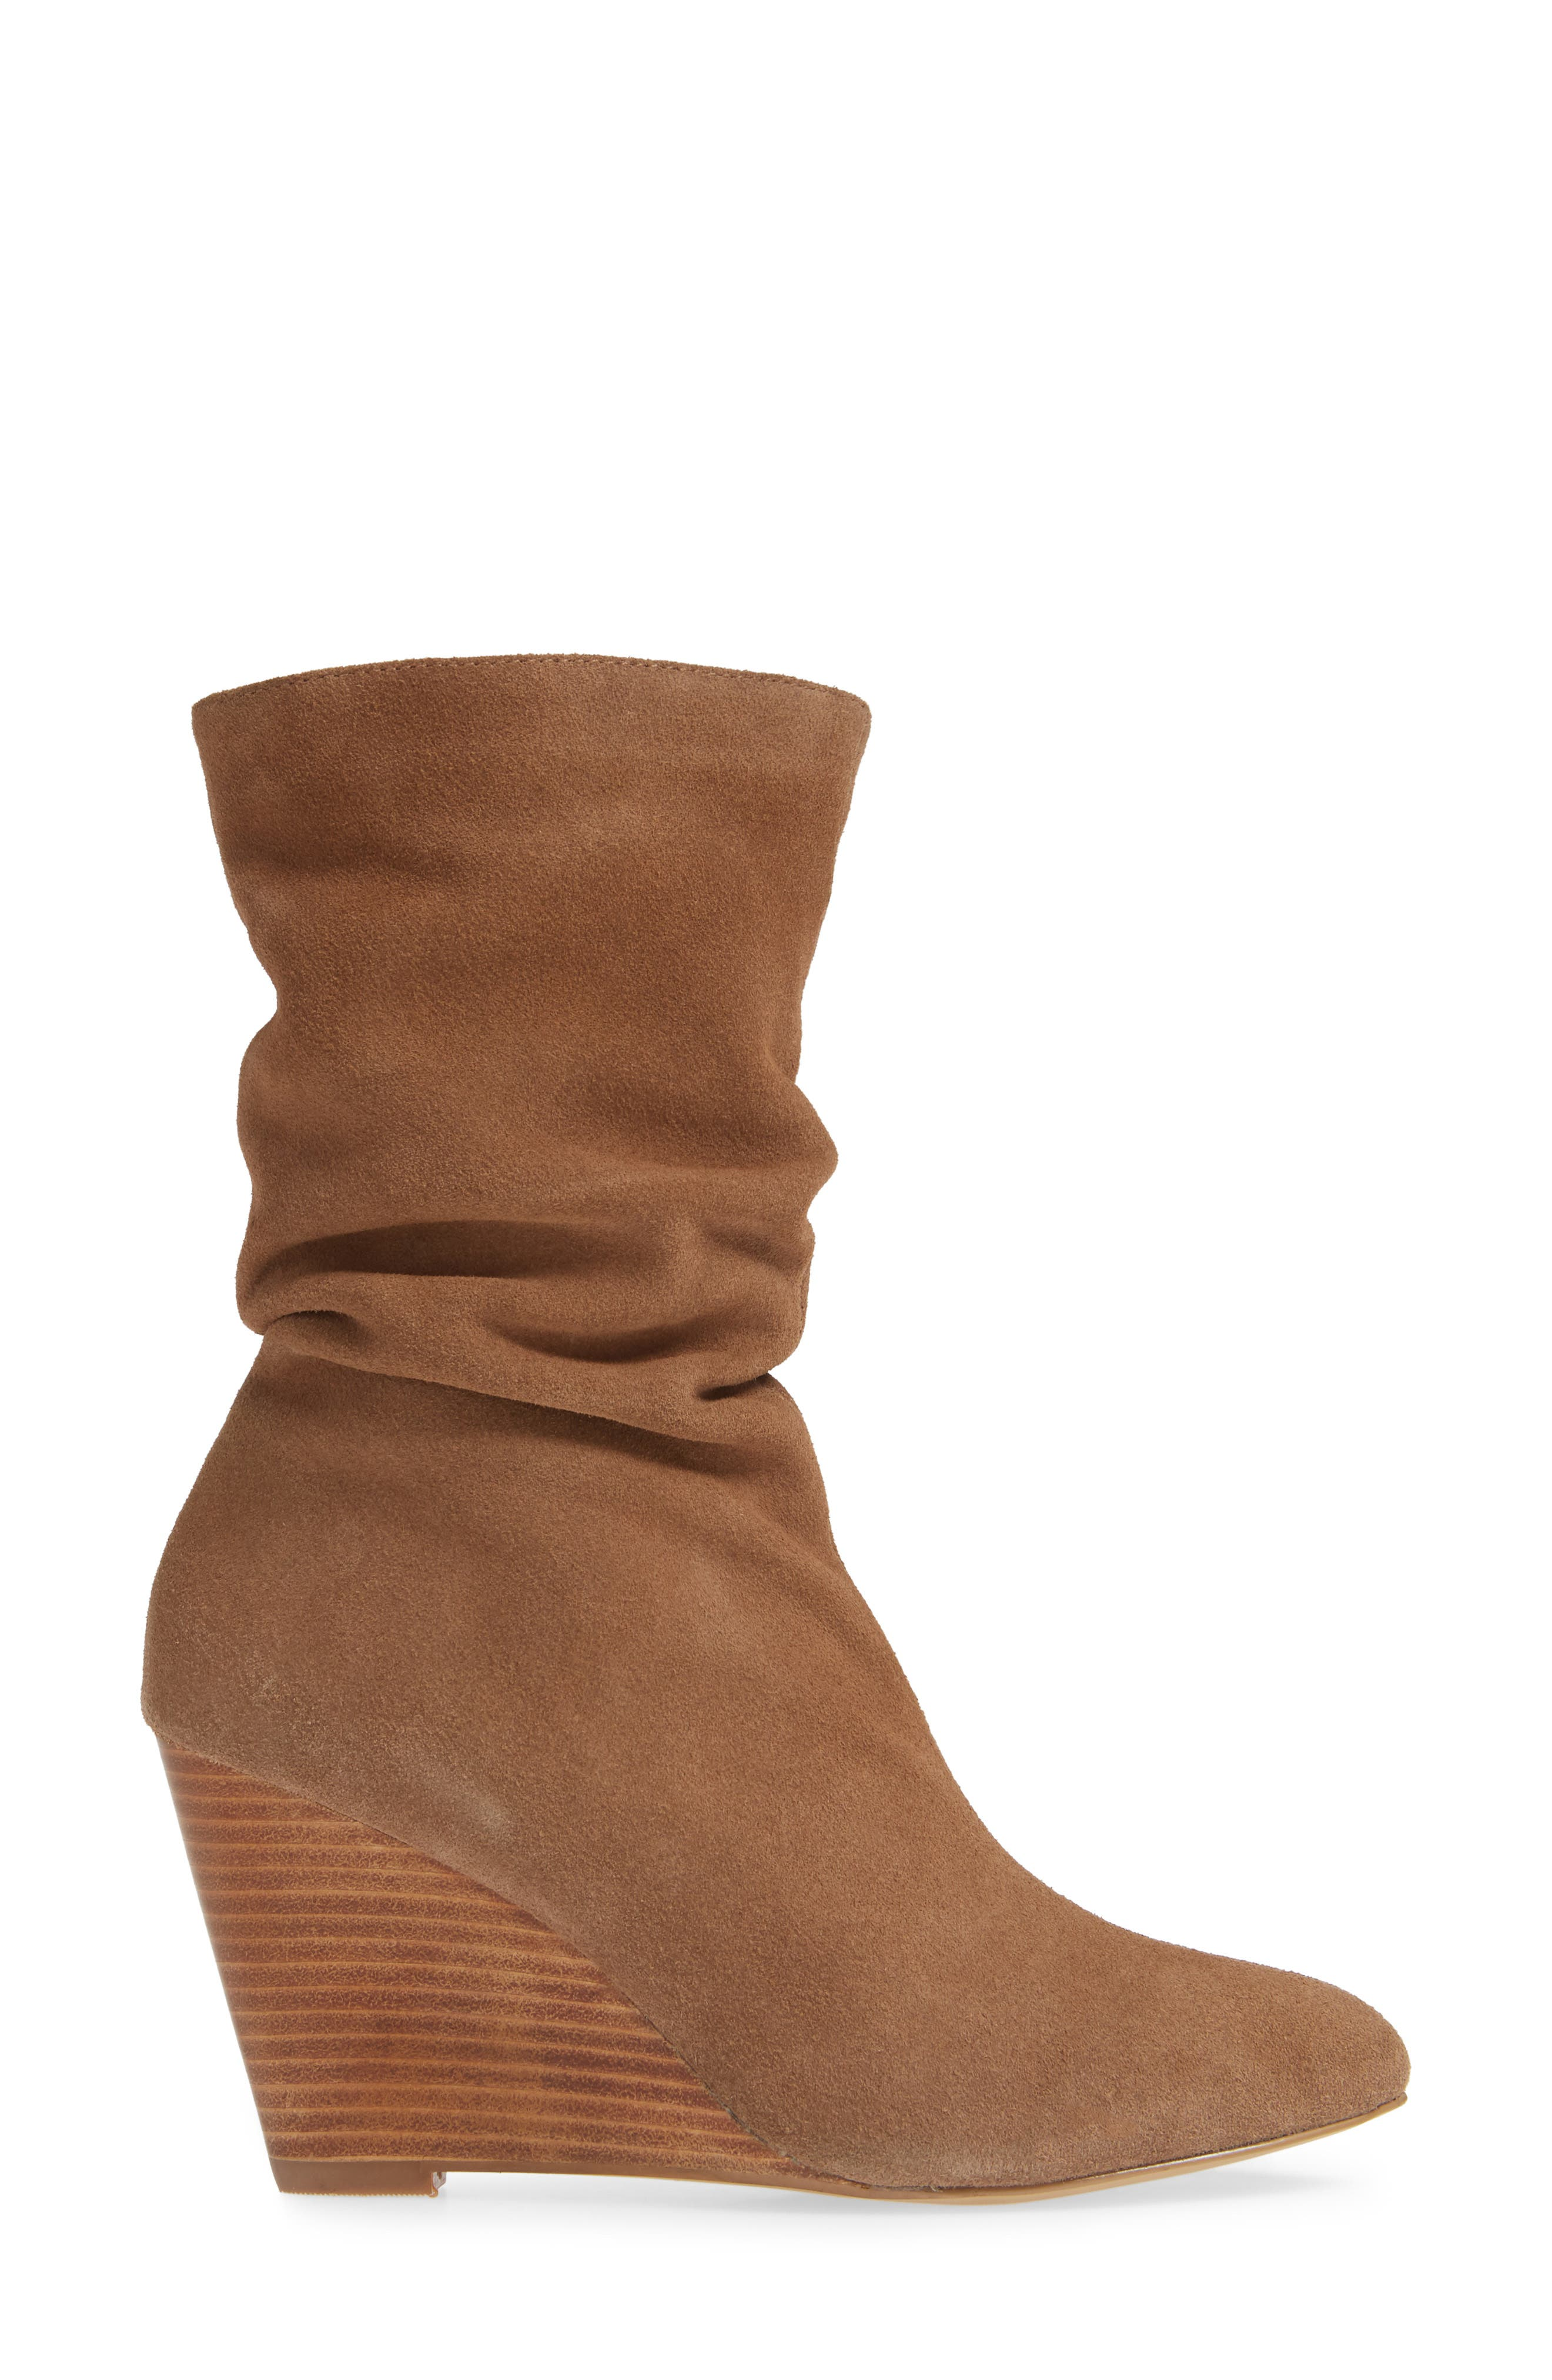 CHARLES BY CHARLES DAVID, Edell Slouchy Wedge Boot, Alternate thumbnail 3, color, TAUPE SUEDE